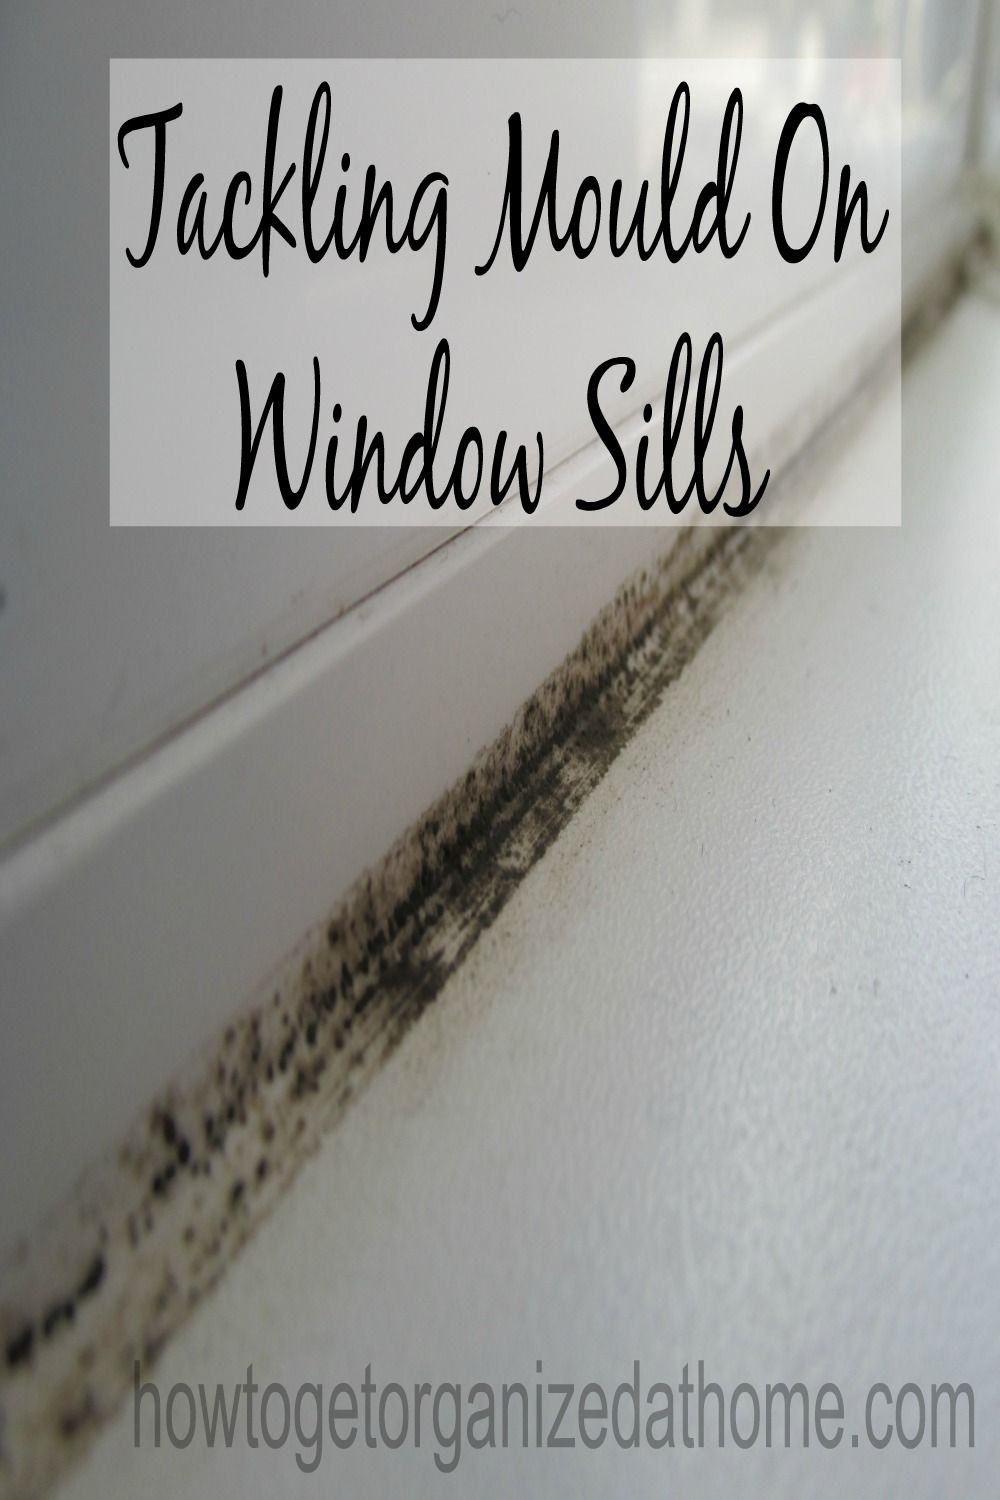 Tackling Mould On Window Sills Is A Pain Know What To Use Get Rid Of The Key Removing It For Good